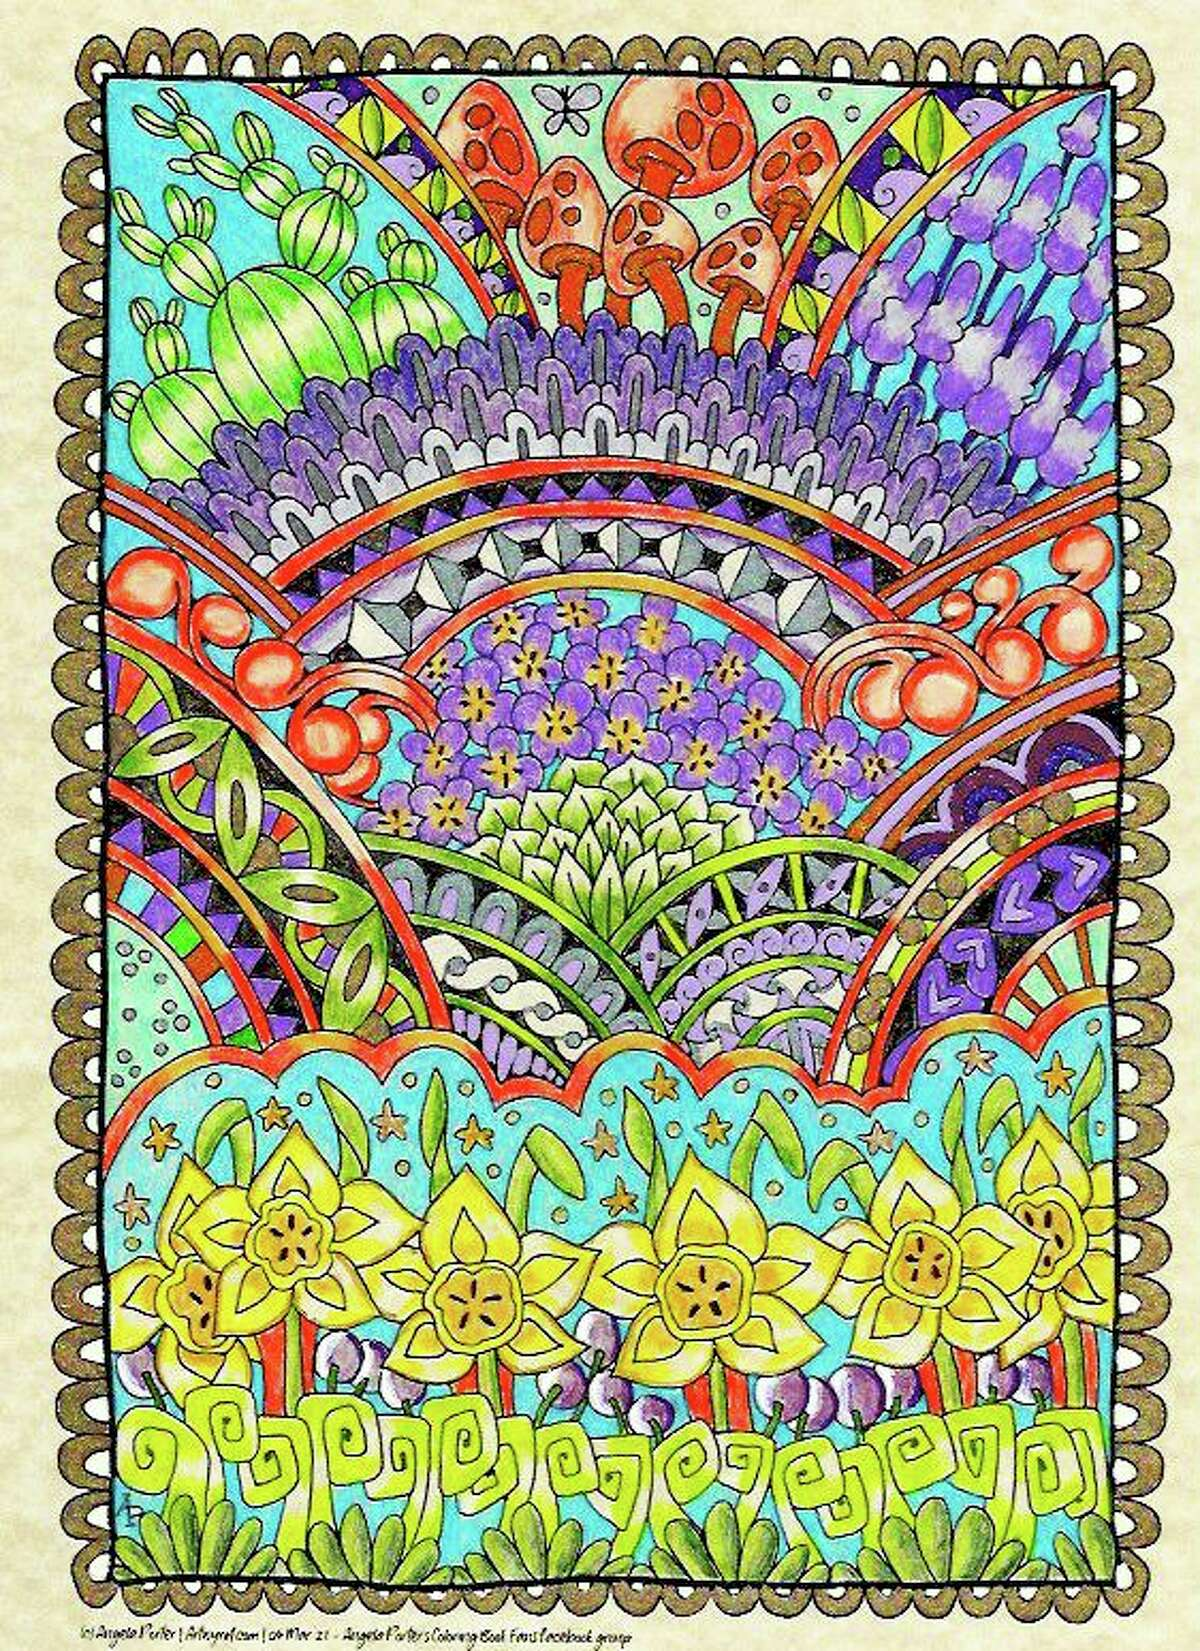 Photo: Artwork by Angela Porter, colored by Sally Bahner.